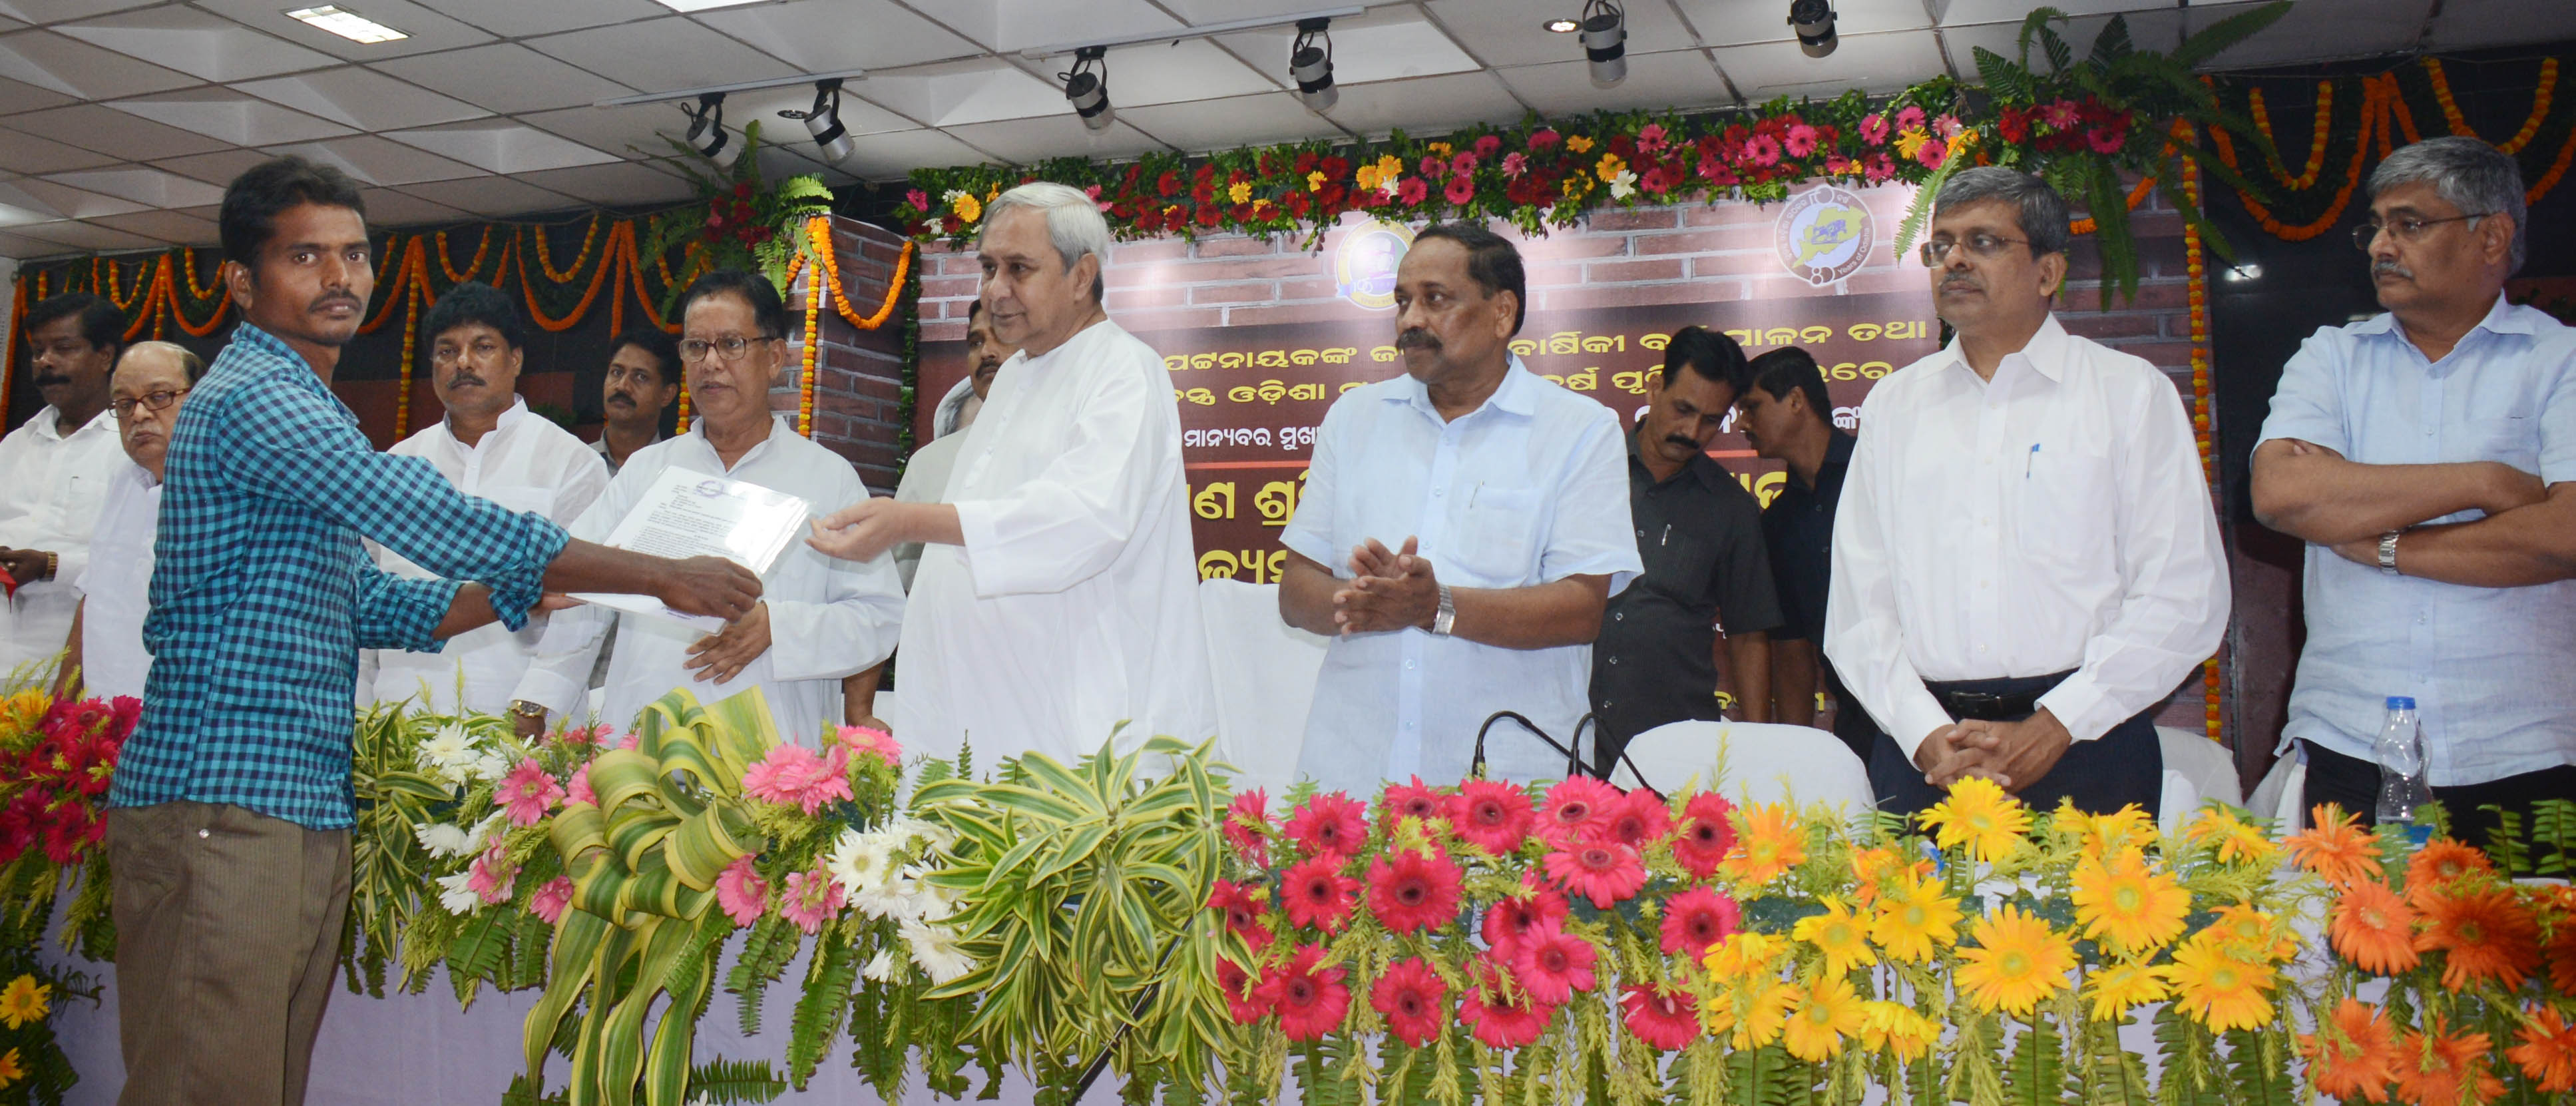 naveen-patnaik-distributing-pension-benefits-at-ouat